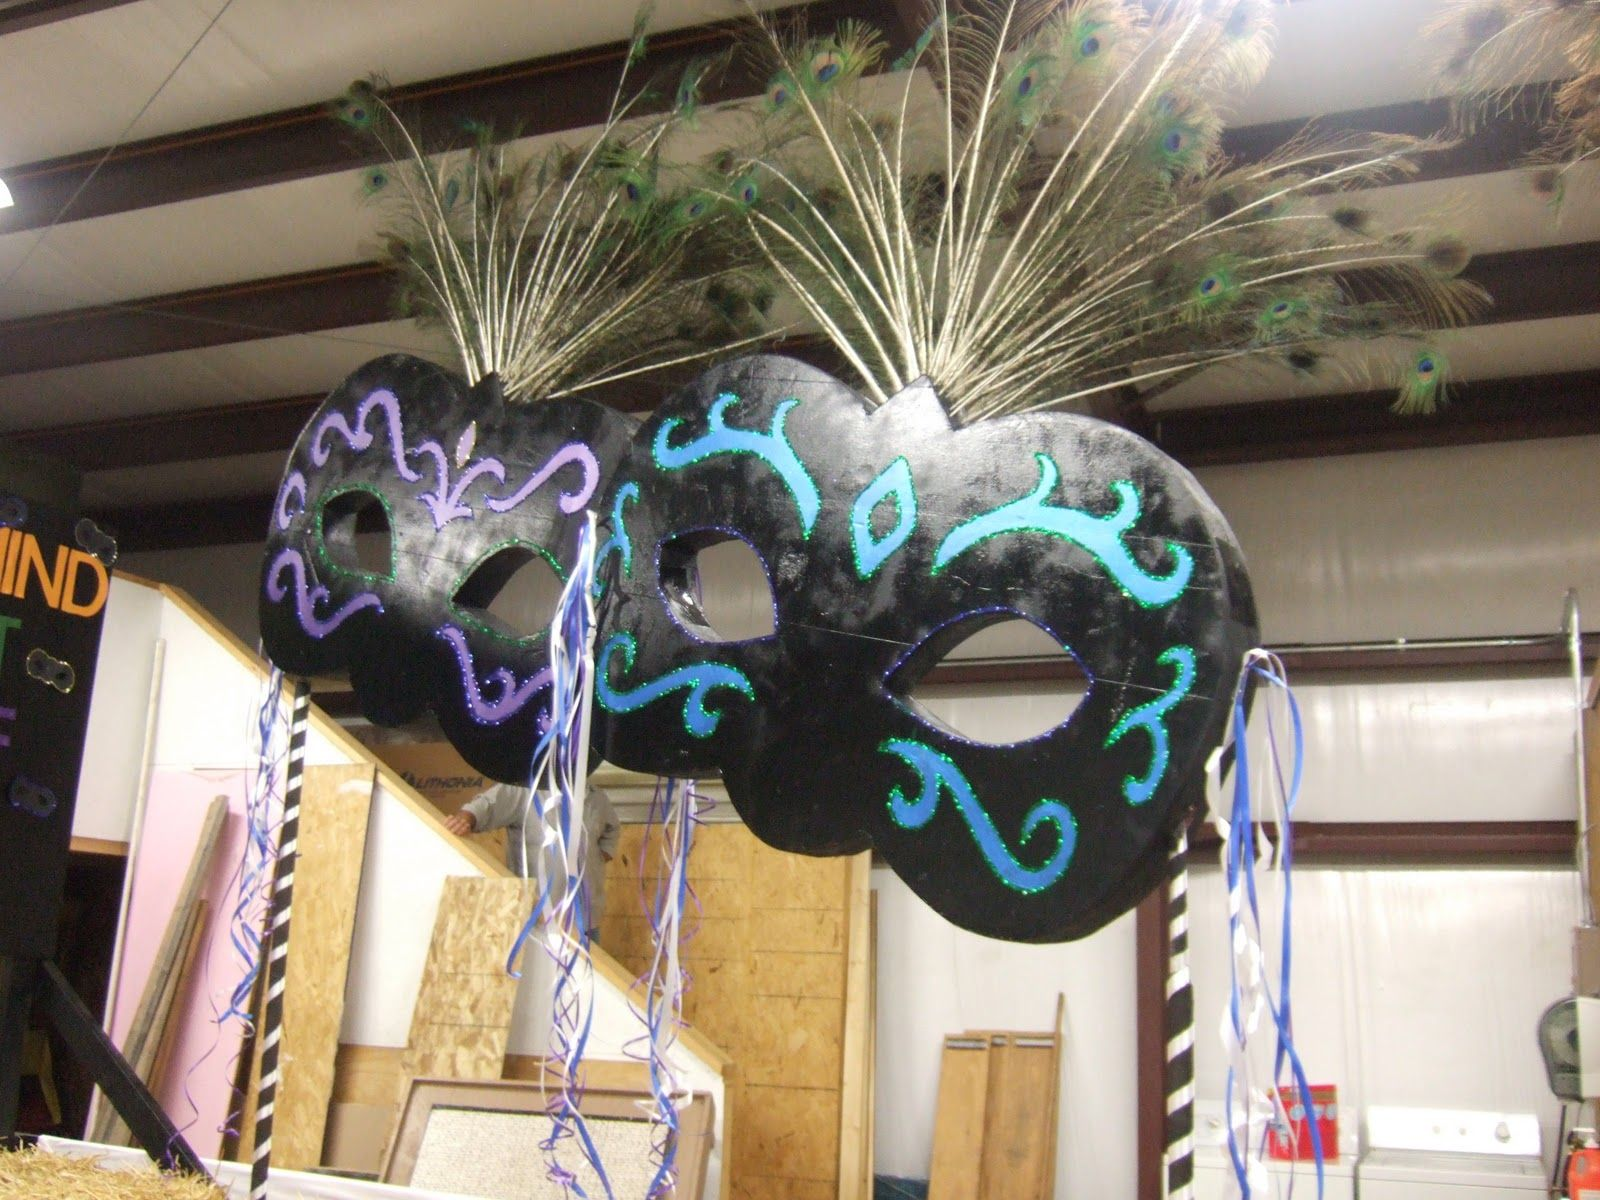 How To Make Giant Display Masks Out Of Foam Work Event Mardi Gras